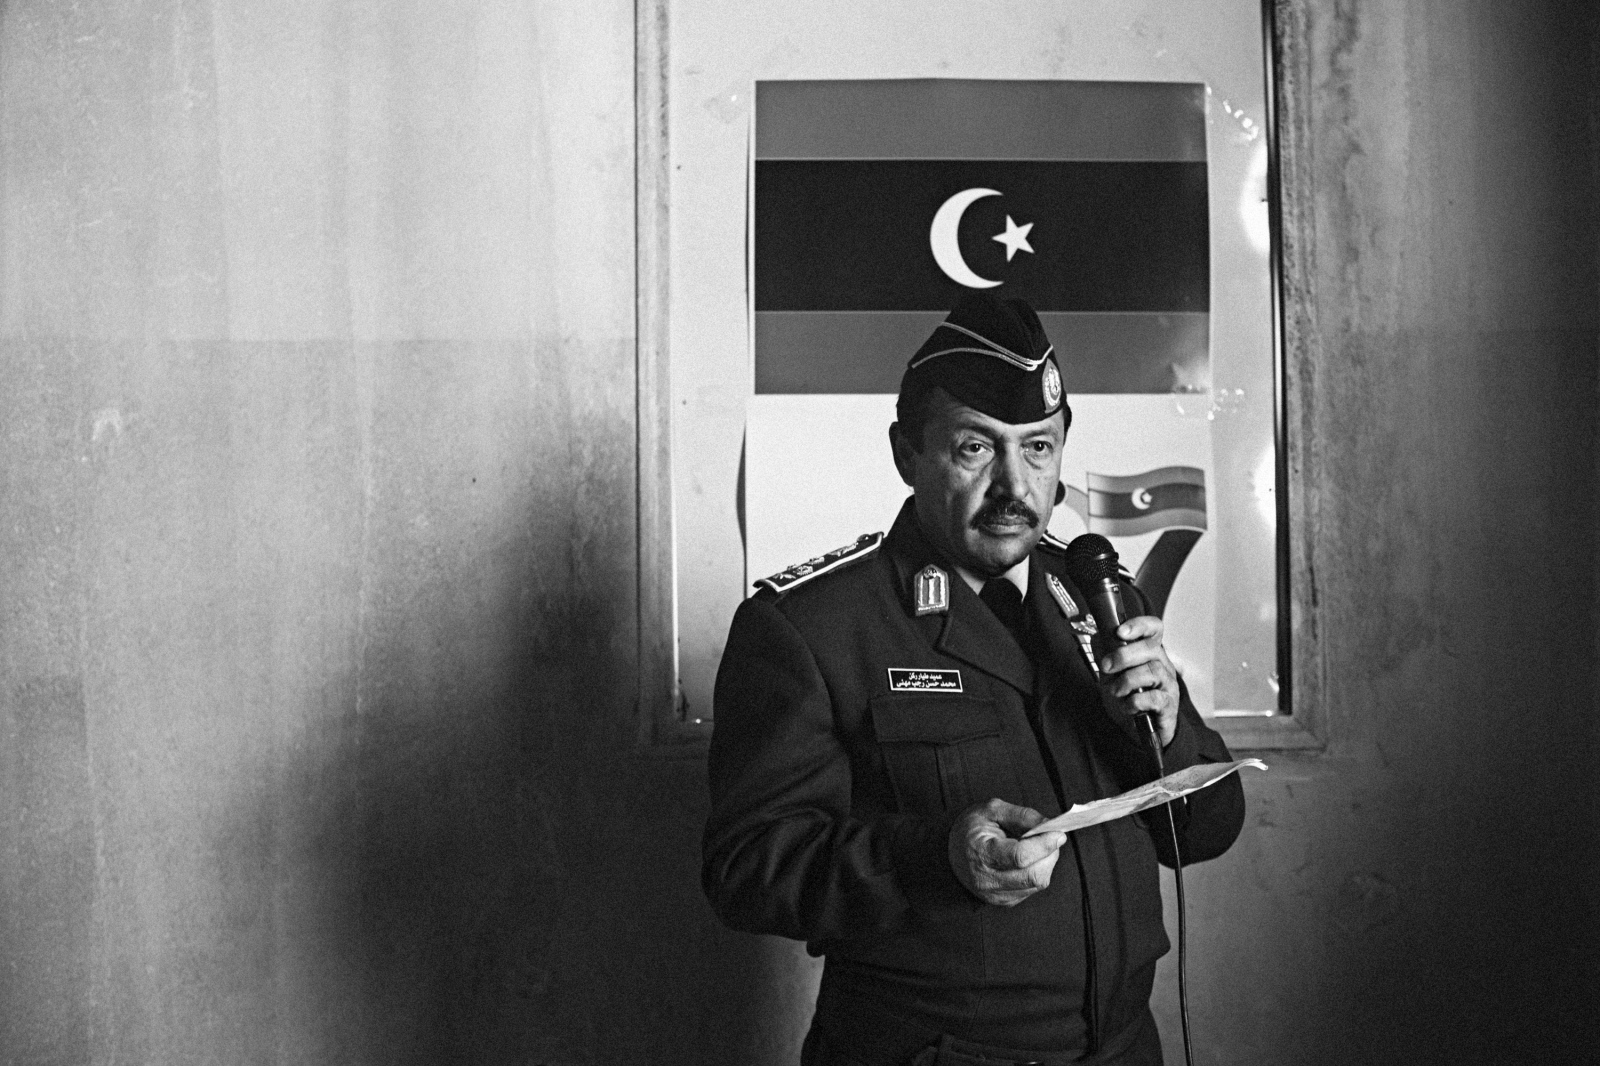 A fighter pilot turned revolutionary, Mohamed Mufta Dineiri, makes a statement for Libyan television in which he renounced the regime and confirmed his solidarity with the opposition on February 26, 2011 in Benghazi, Libya.